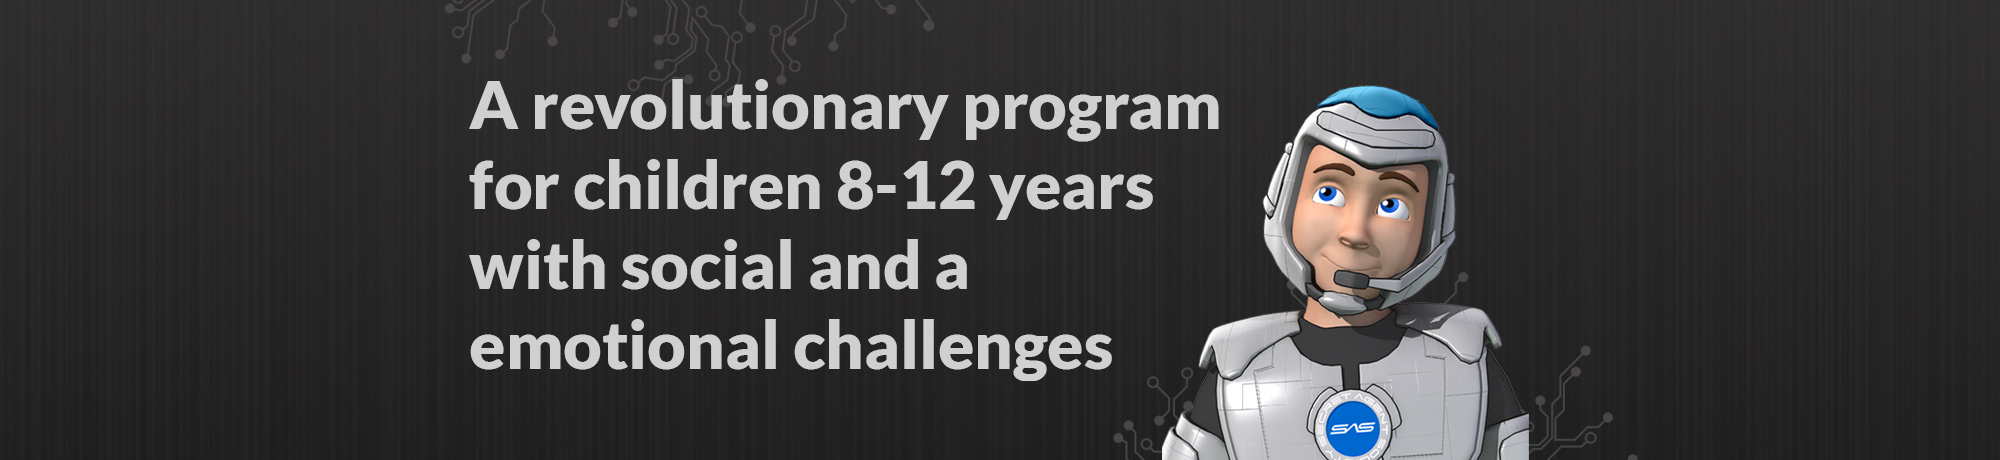 A Revolutionary program for 8-12 year-olds